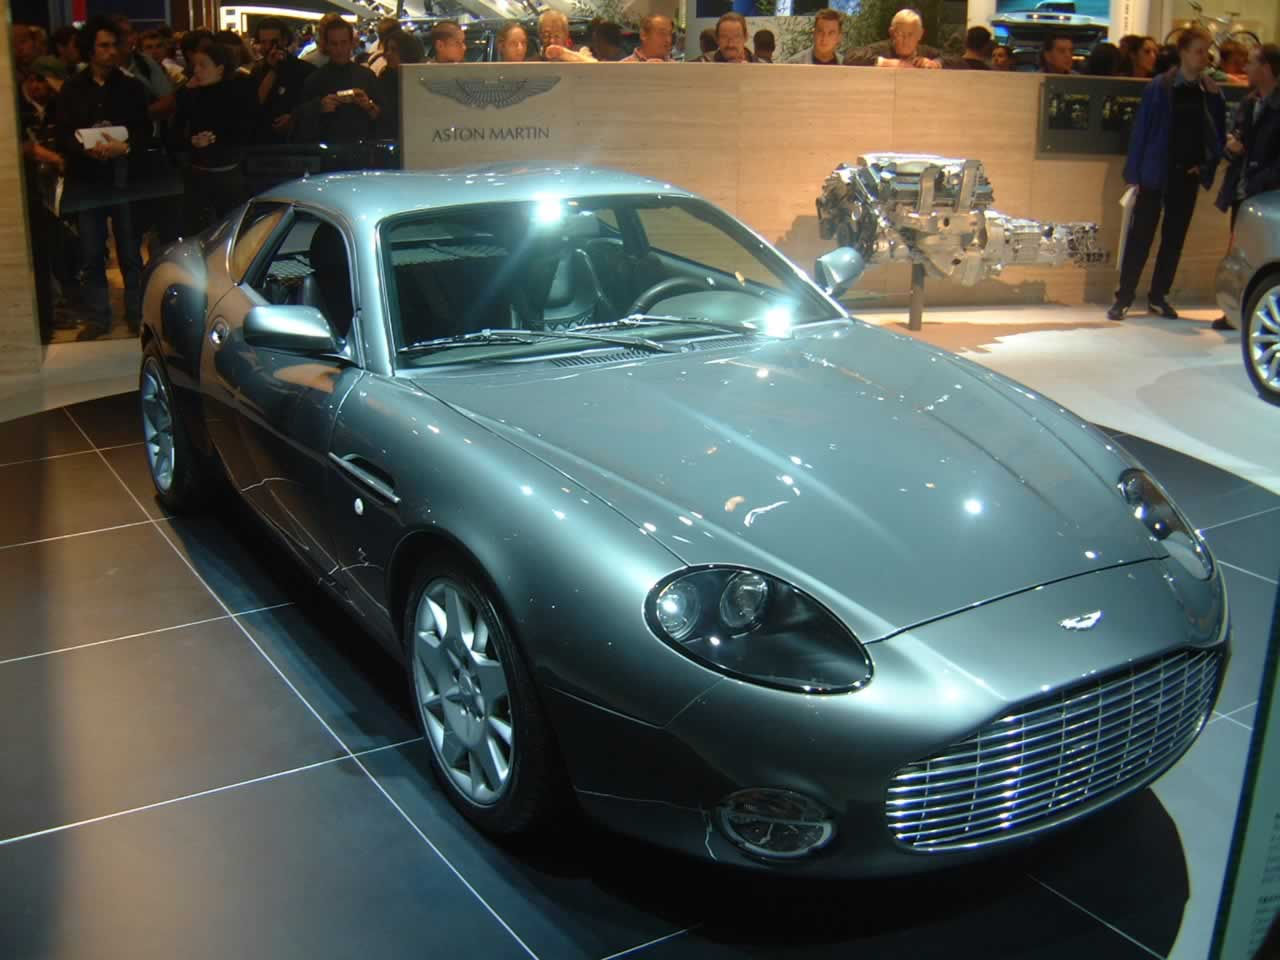 2008 aston martin db7 zagato – pictures, information and specs